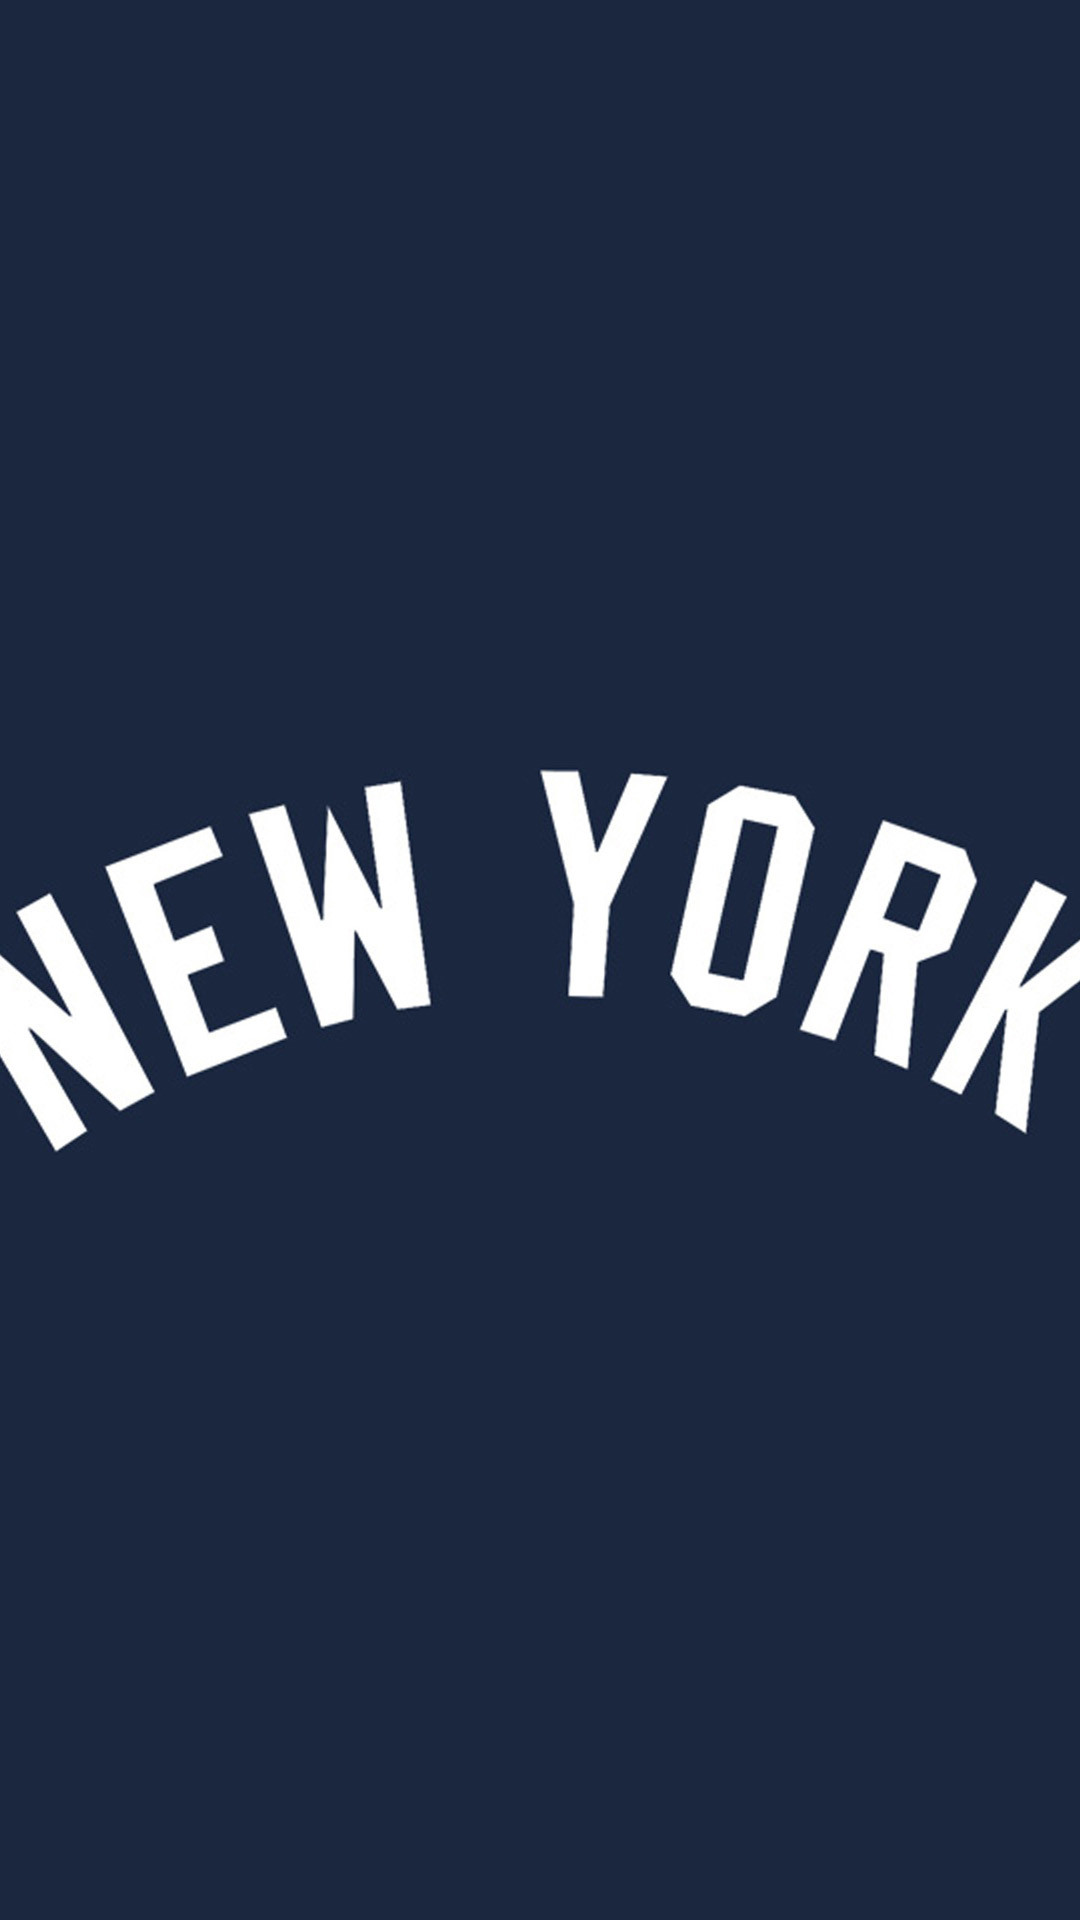 Yankees Wallpaper Iphone X Ny Yankees Logo Wallpaper 60 Images